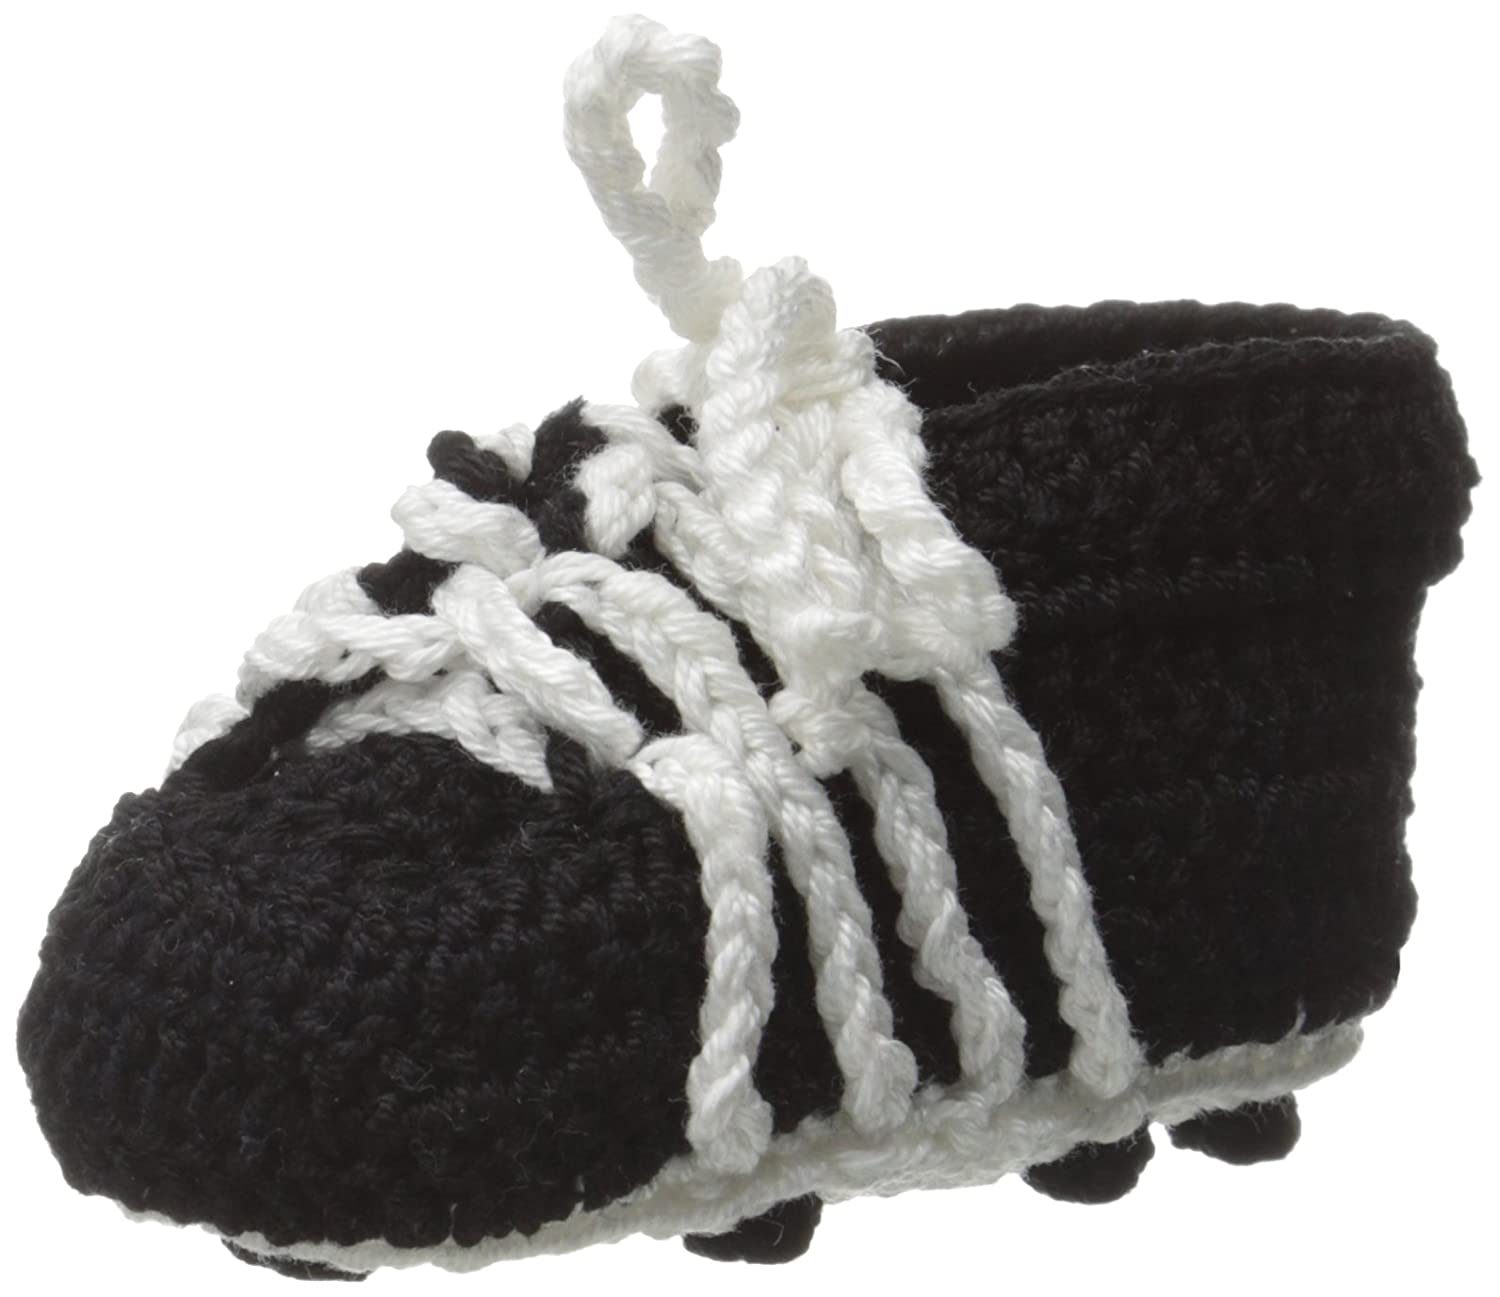 Amazon Jefferies Socks Baby Boys Soccer Cleats Crochet Bootie